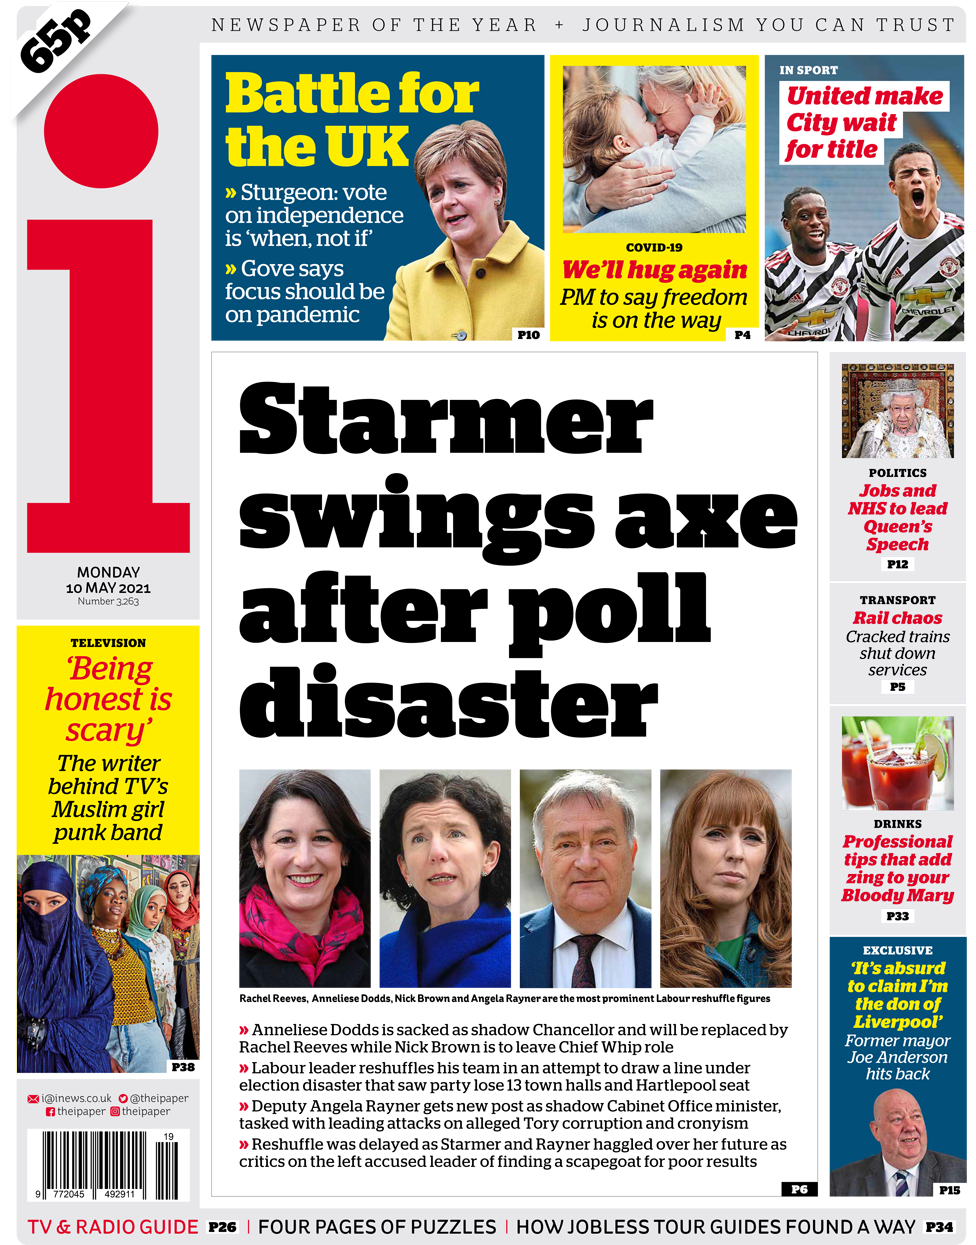 The i front page 10 May 2021